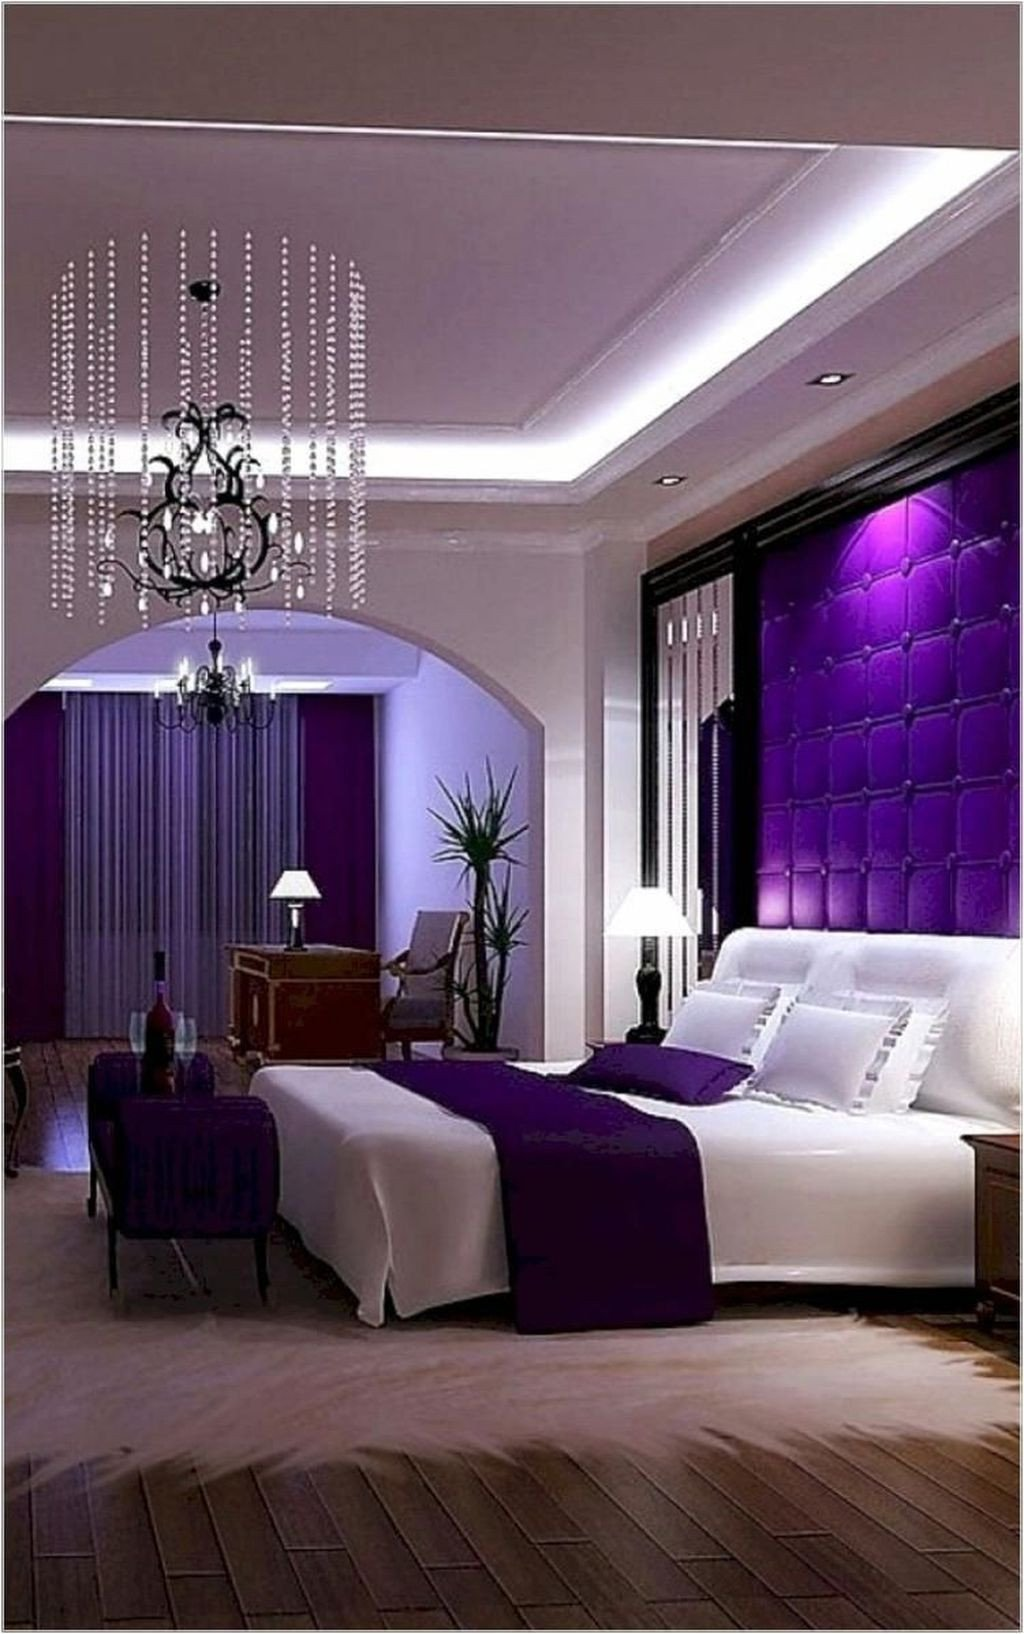 Romantic Bedroom Colors for Master Bedrooms Fresh 50 Inspiring Romantic Master Bedroom Ideas for Burning Love